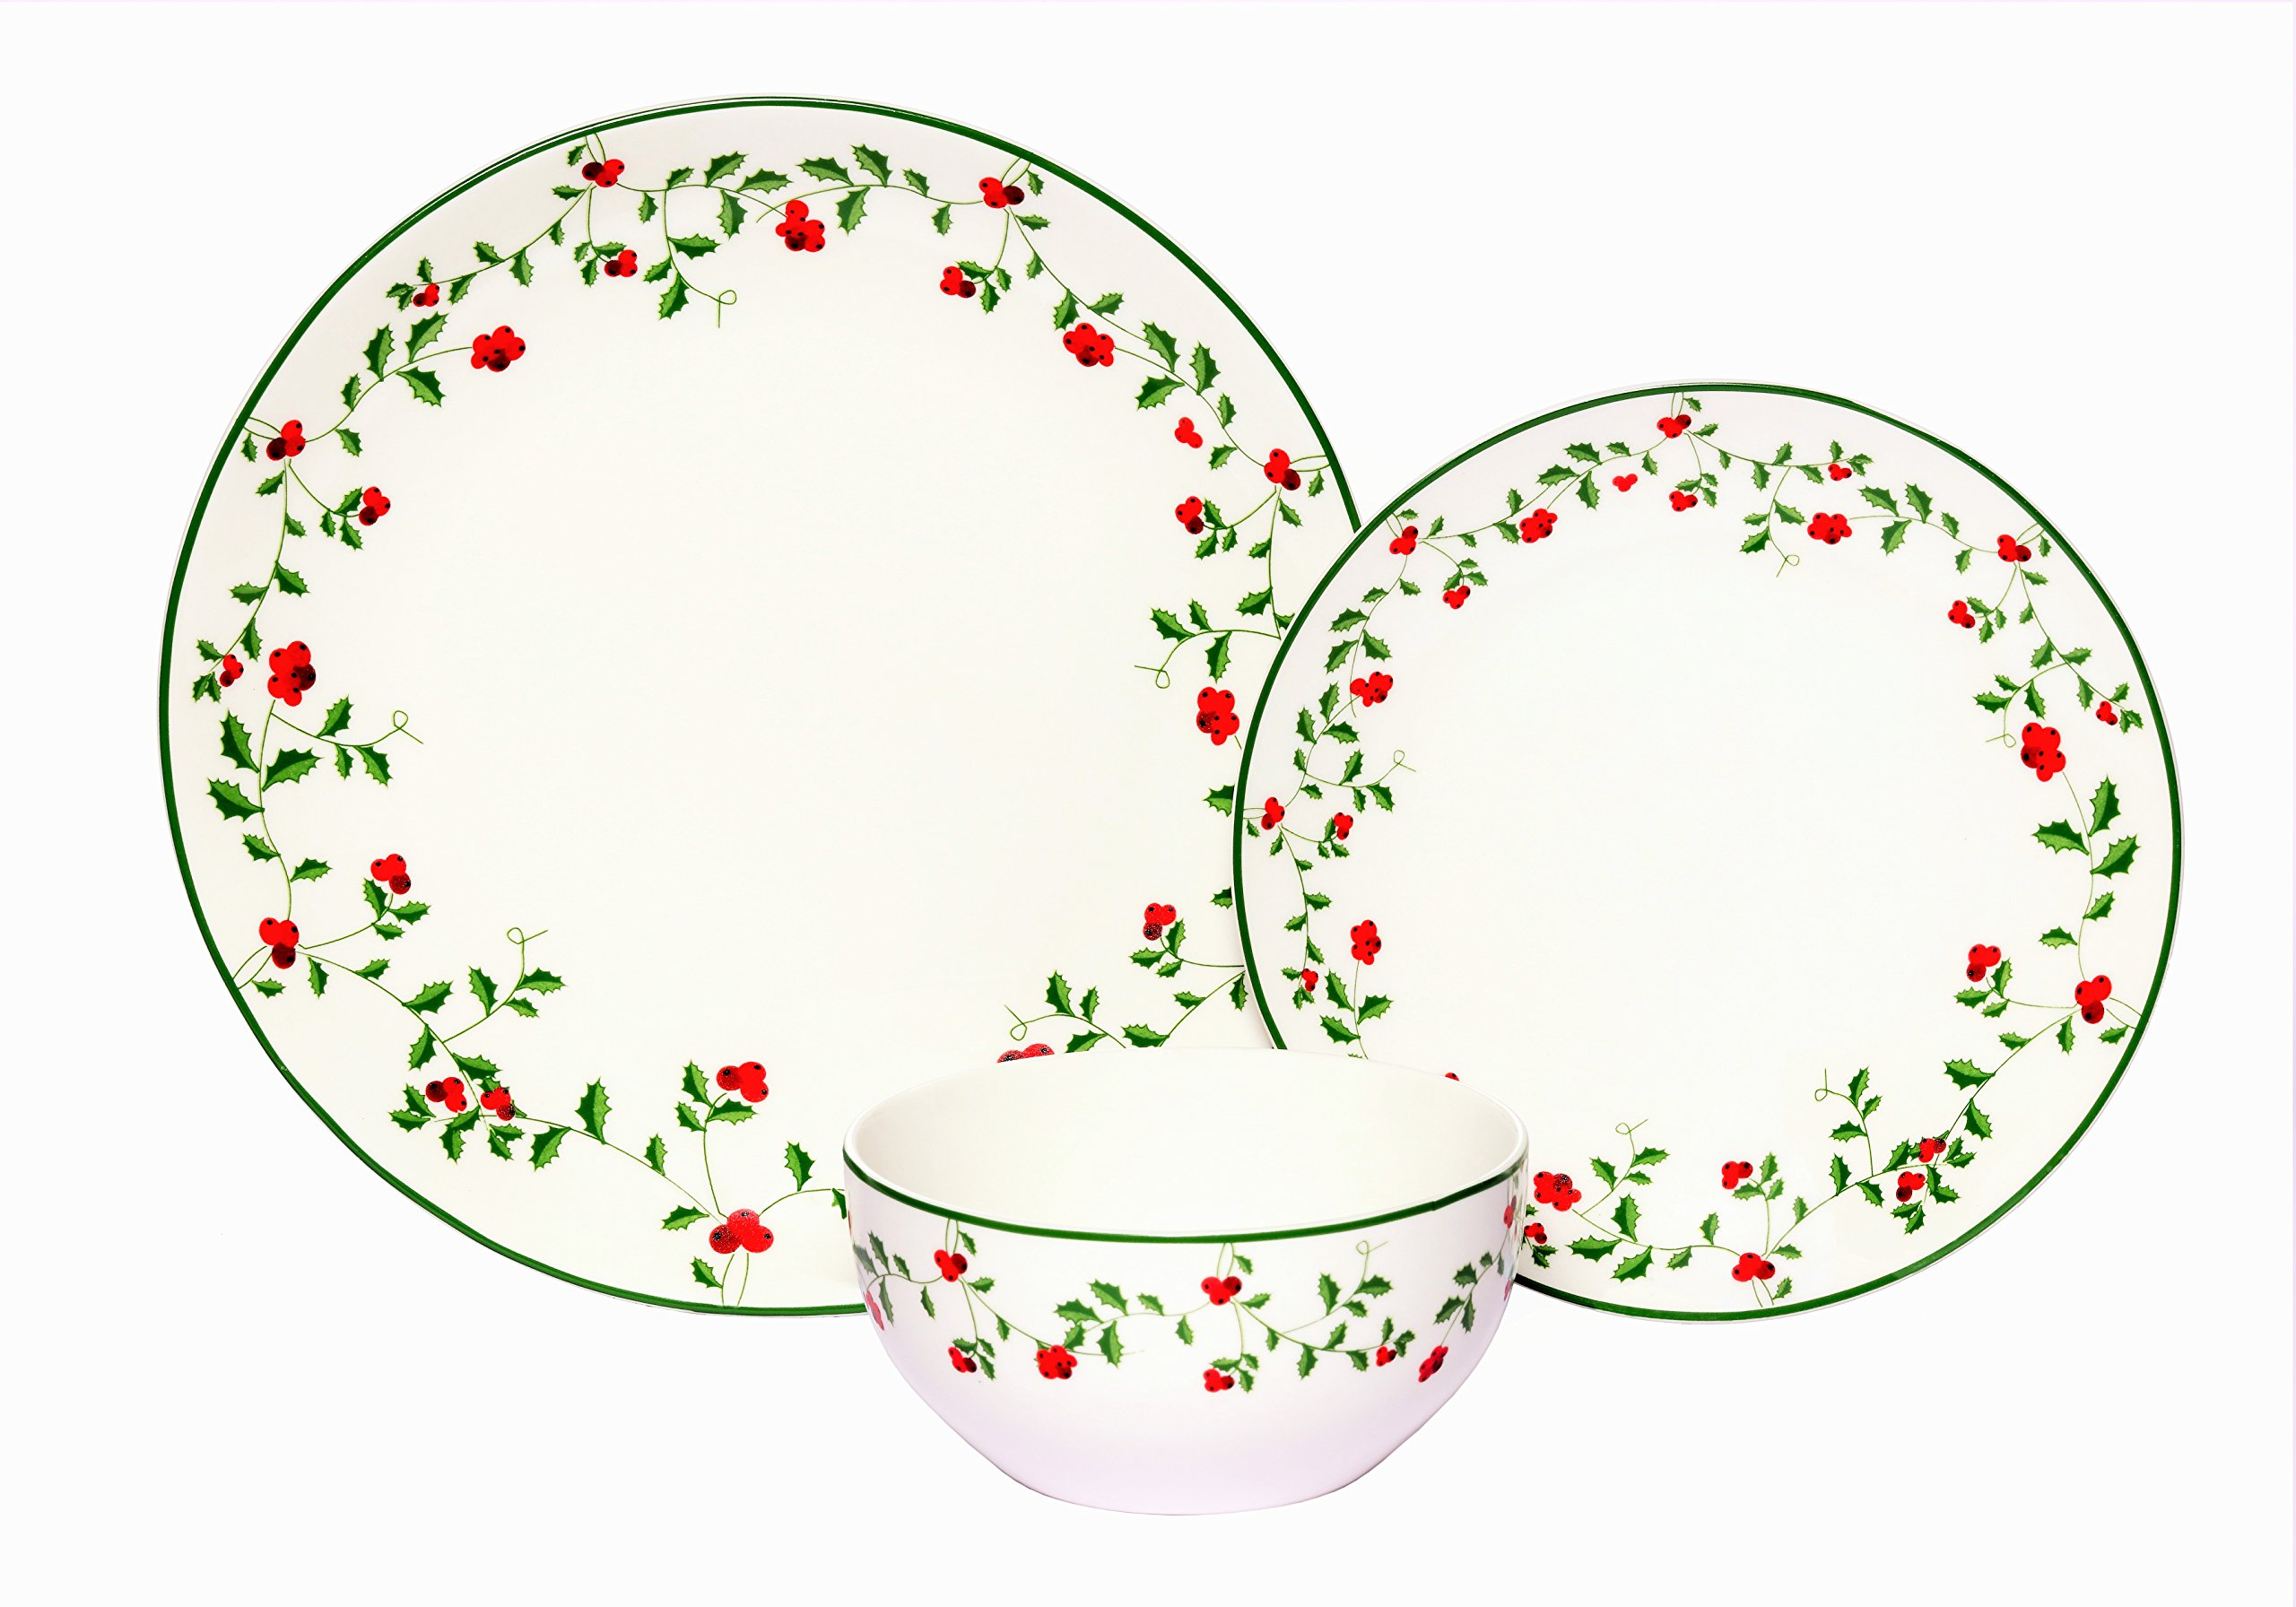 Melange Coupe 36-Piece Porcelain Dinnerware Set (Winterberry) | Service for 12 | Microwave, Dishwasher & Oven Safe | Dinner Plate, Salad Plate & Soup Bowl (12 Each) by Melange